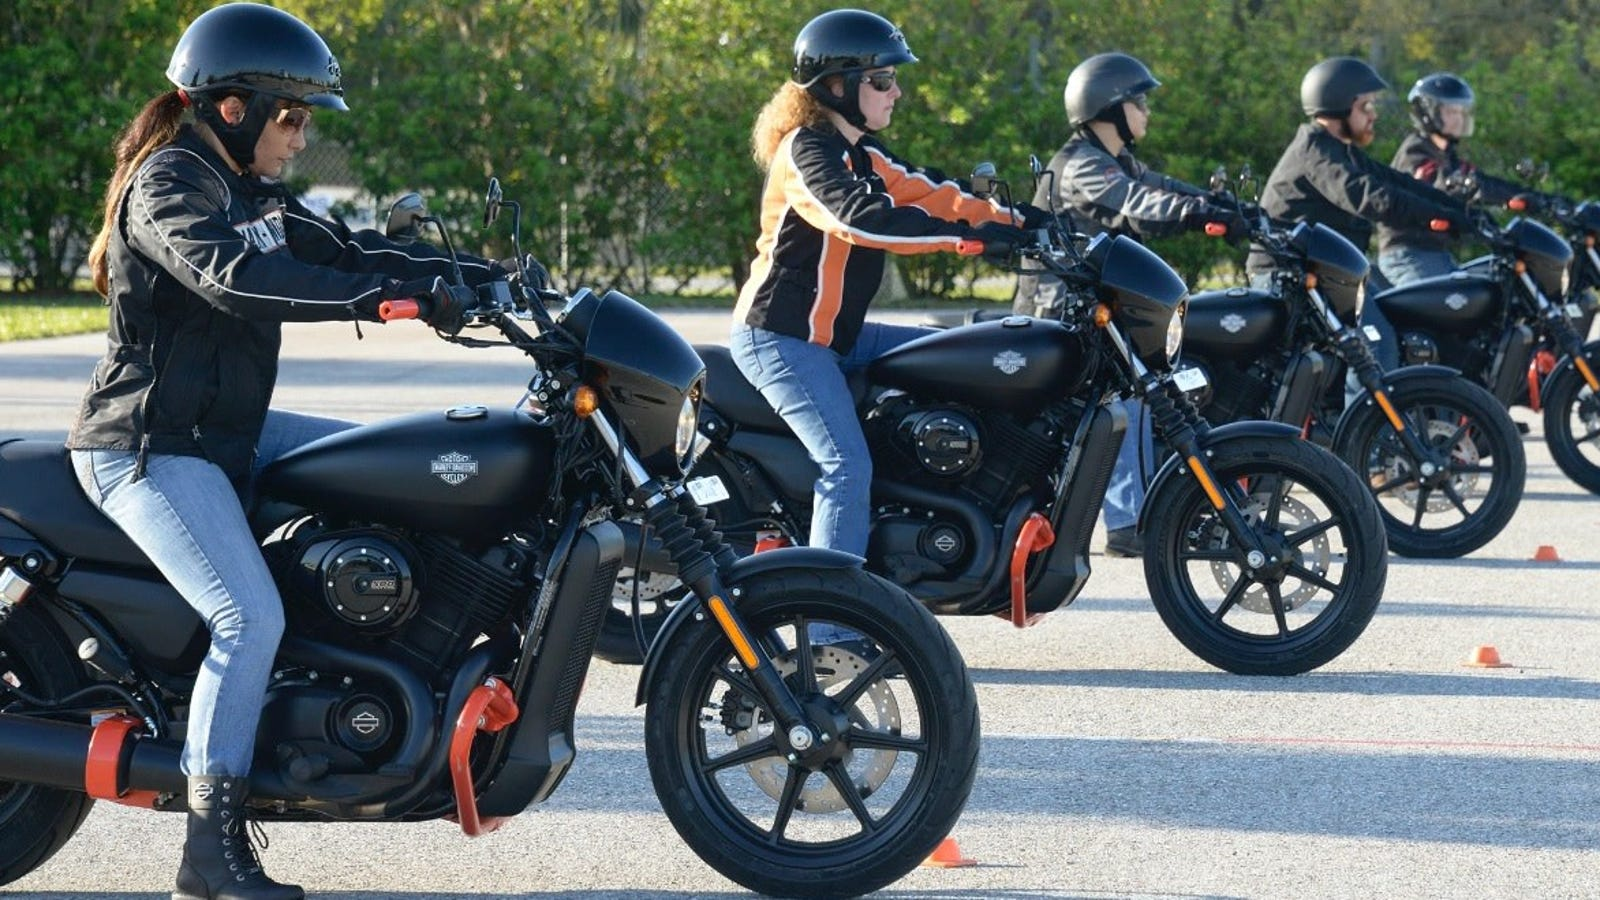 Harley Davidson Offers Students An Opportunity To Ride For